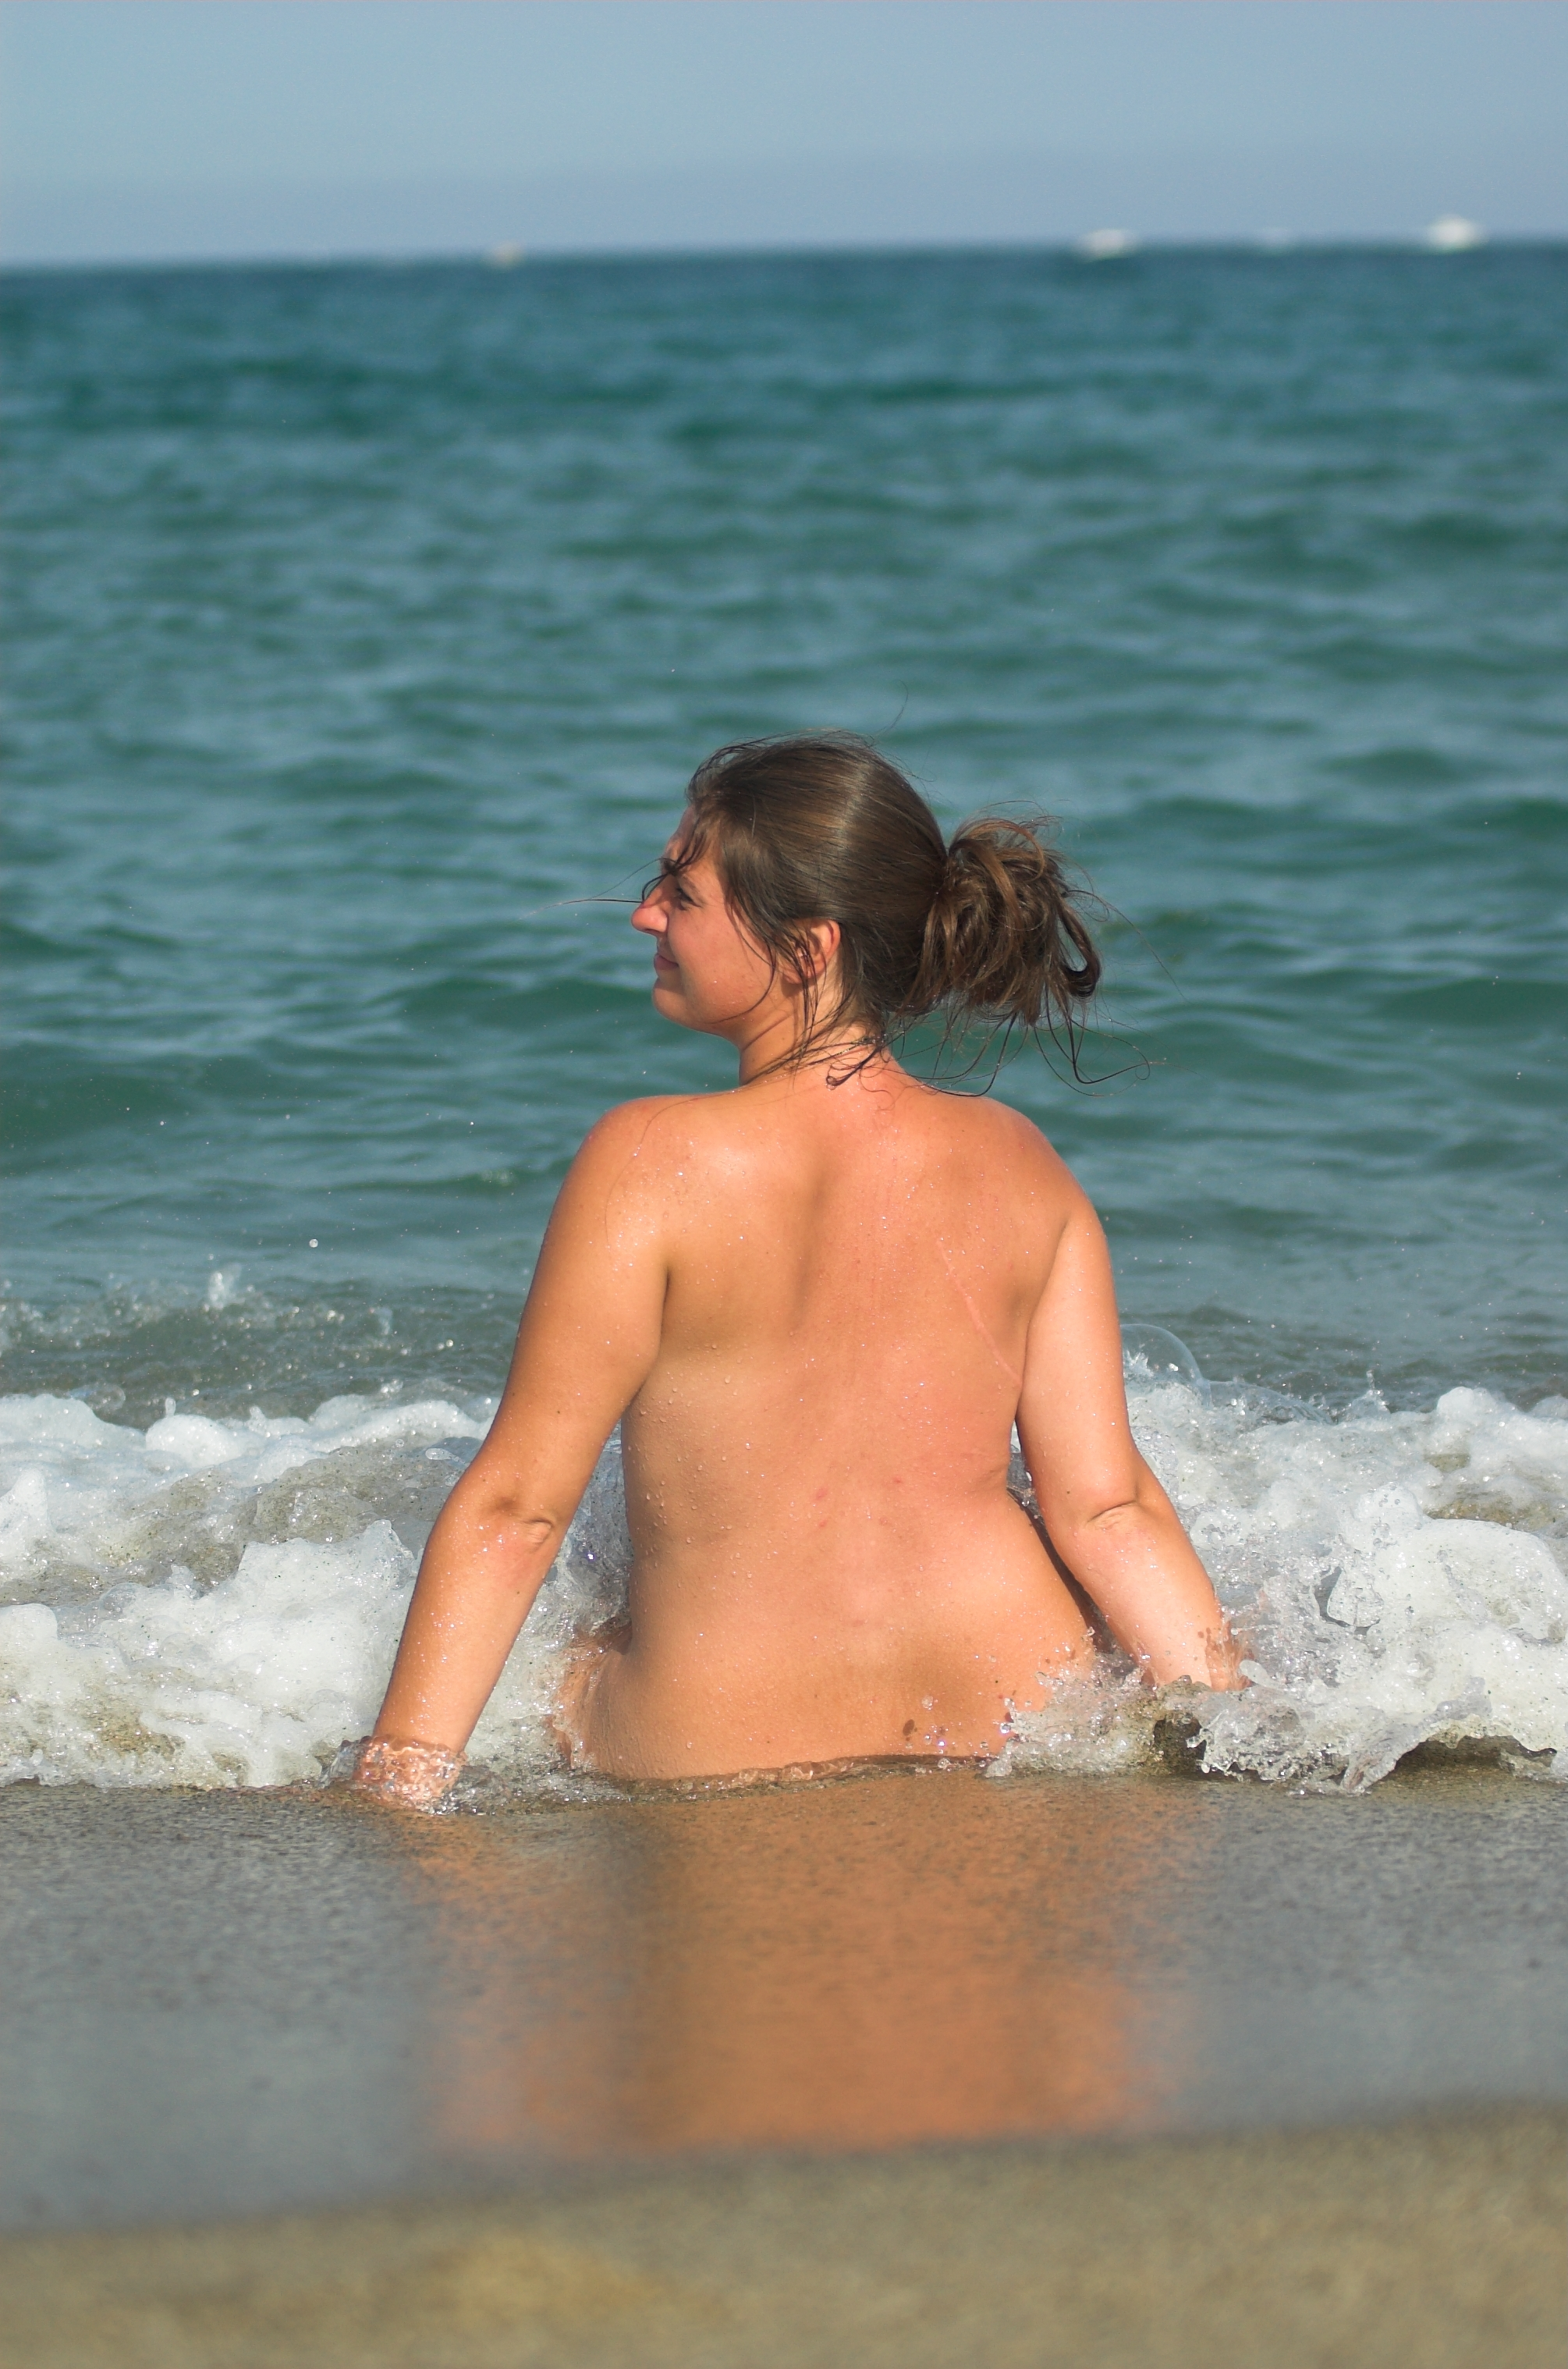 Description Nude on beach.jpg